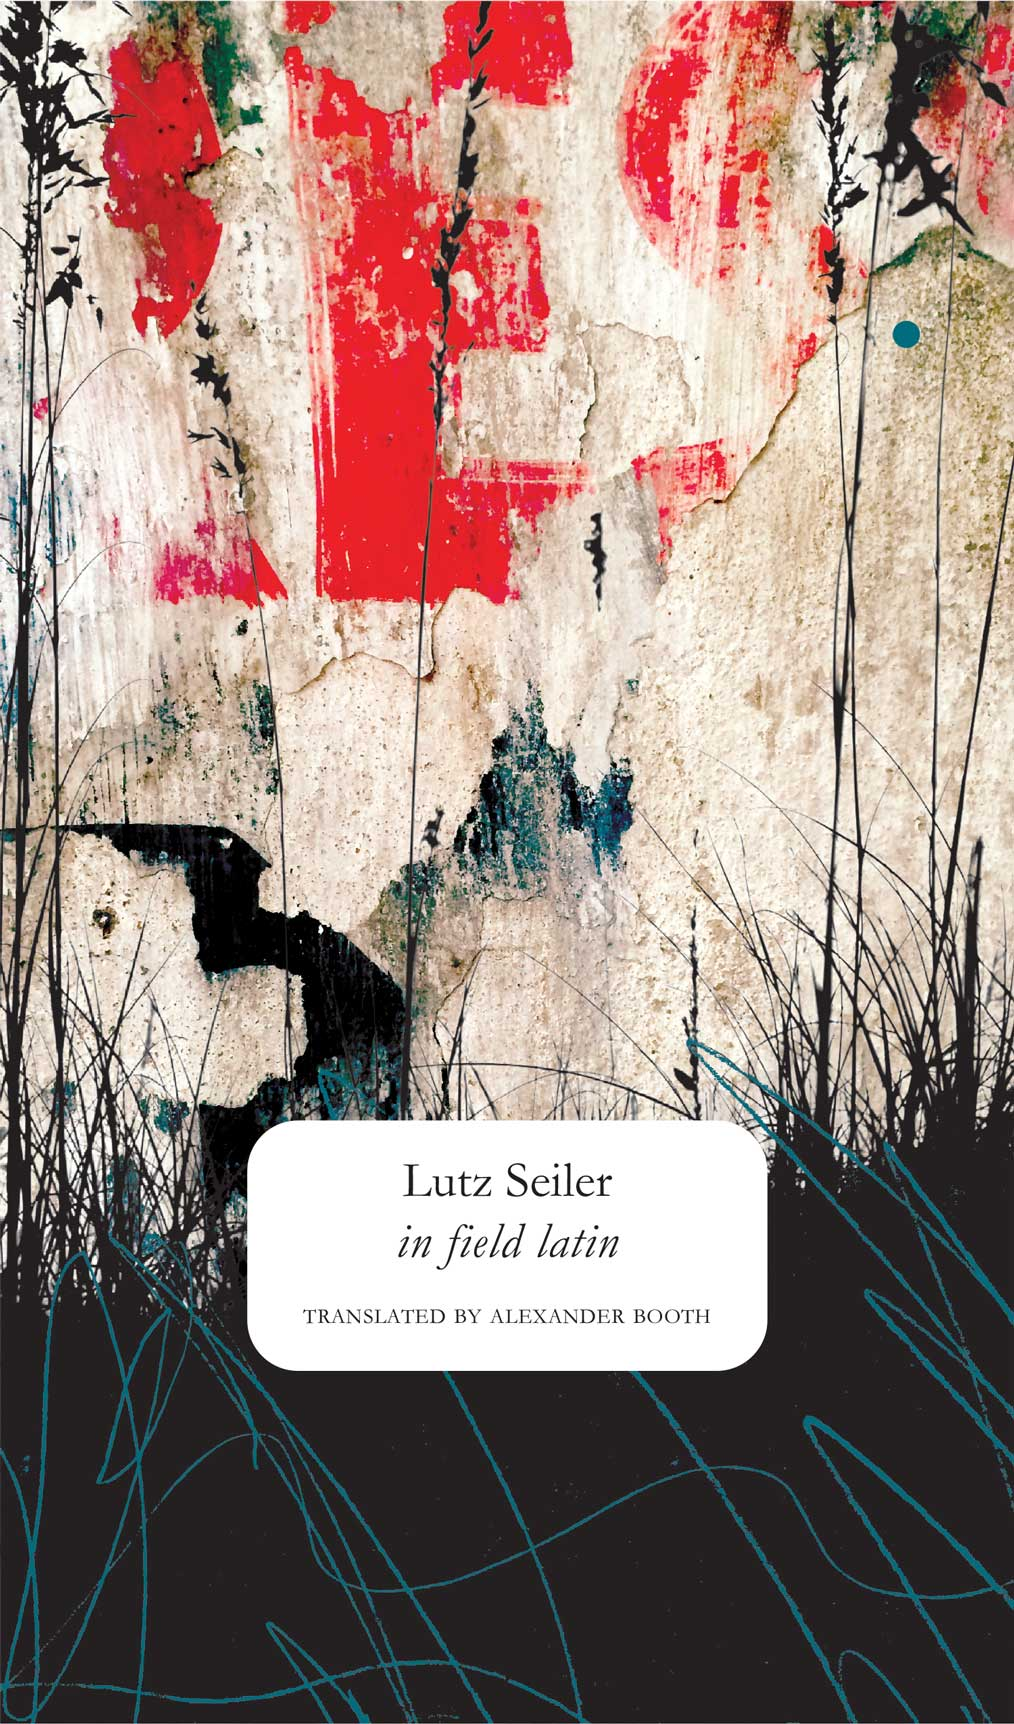 in field latin by Lutz Seiler  |  Seagull Books